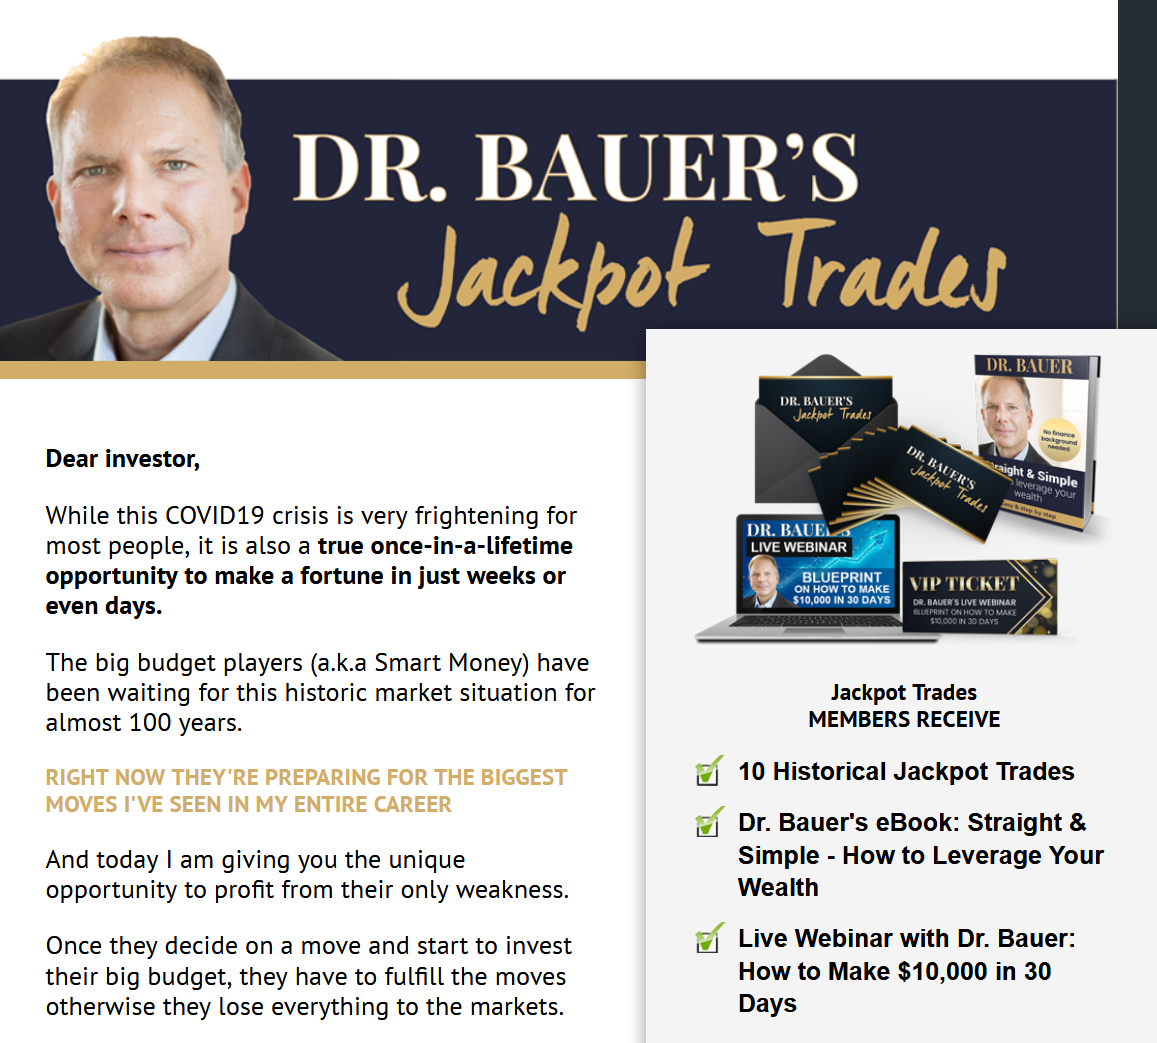 Dr. Bauer's Jackpot Trades Review